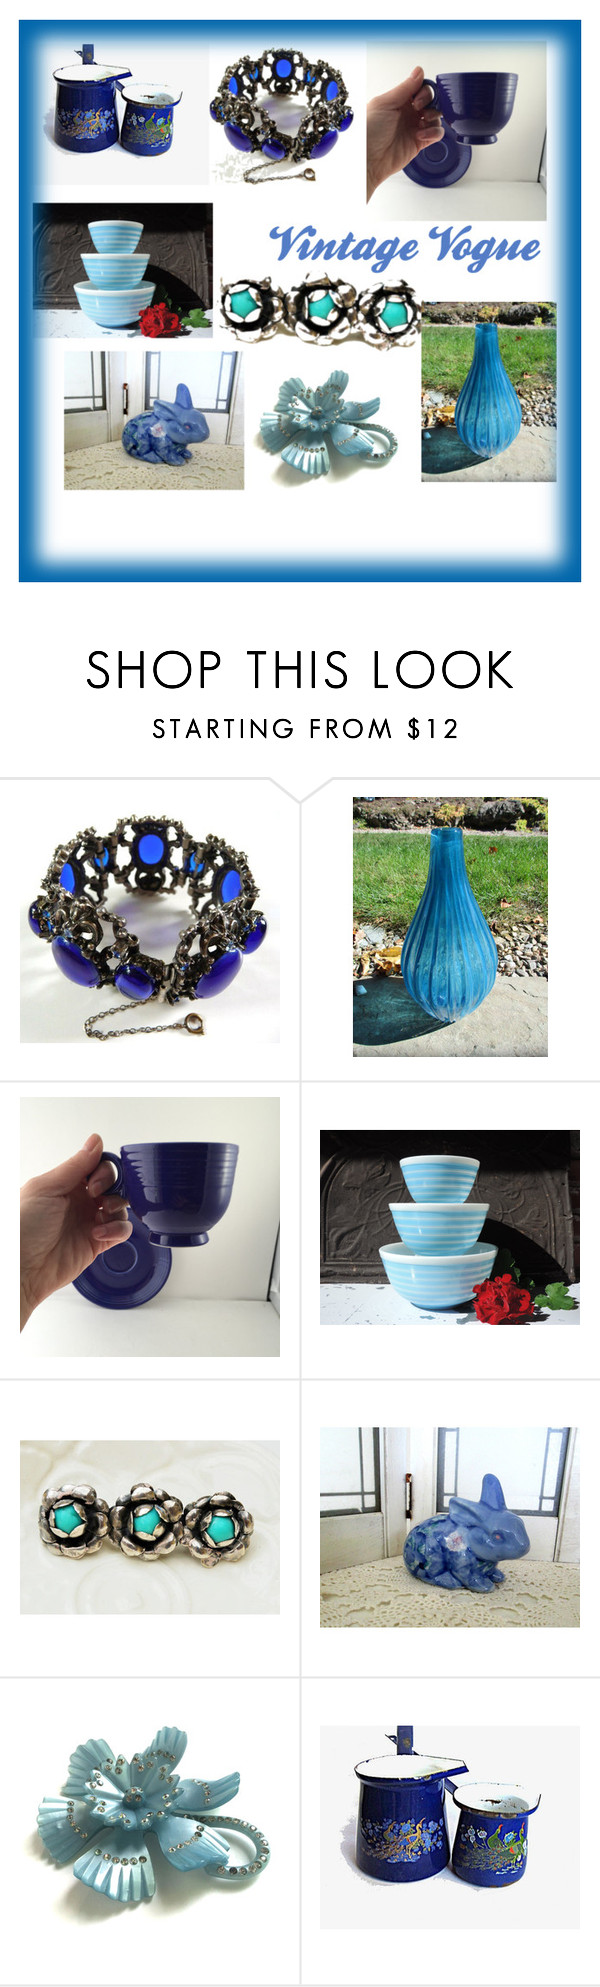 """""""Blues by Vintage Vogue"""" by thesnapdragonslair on Polyvore featuring interior, interiors, interior design, home, home decor, interior decorating, Pyrex and vintage"""